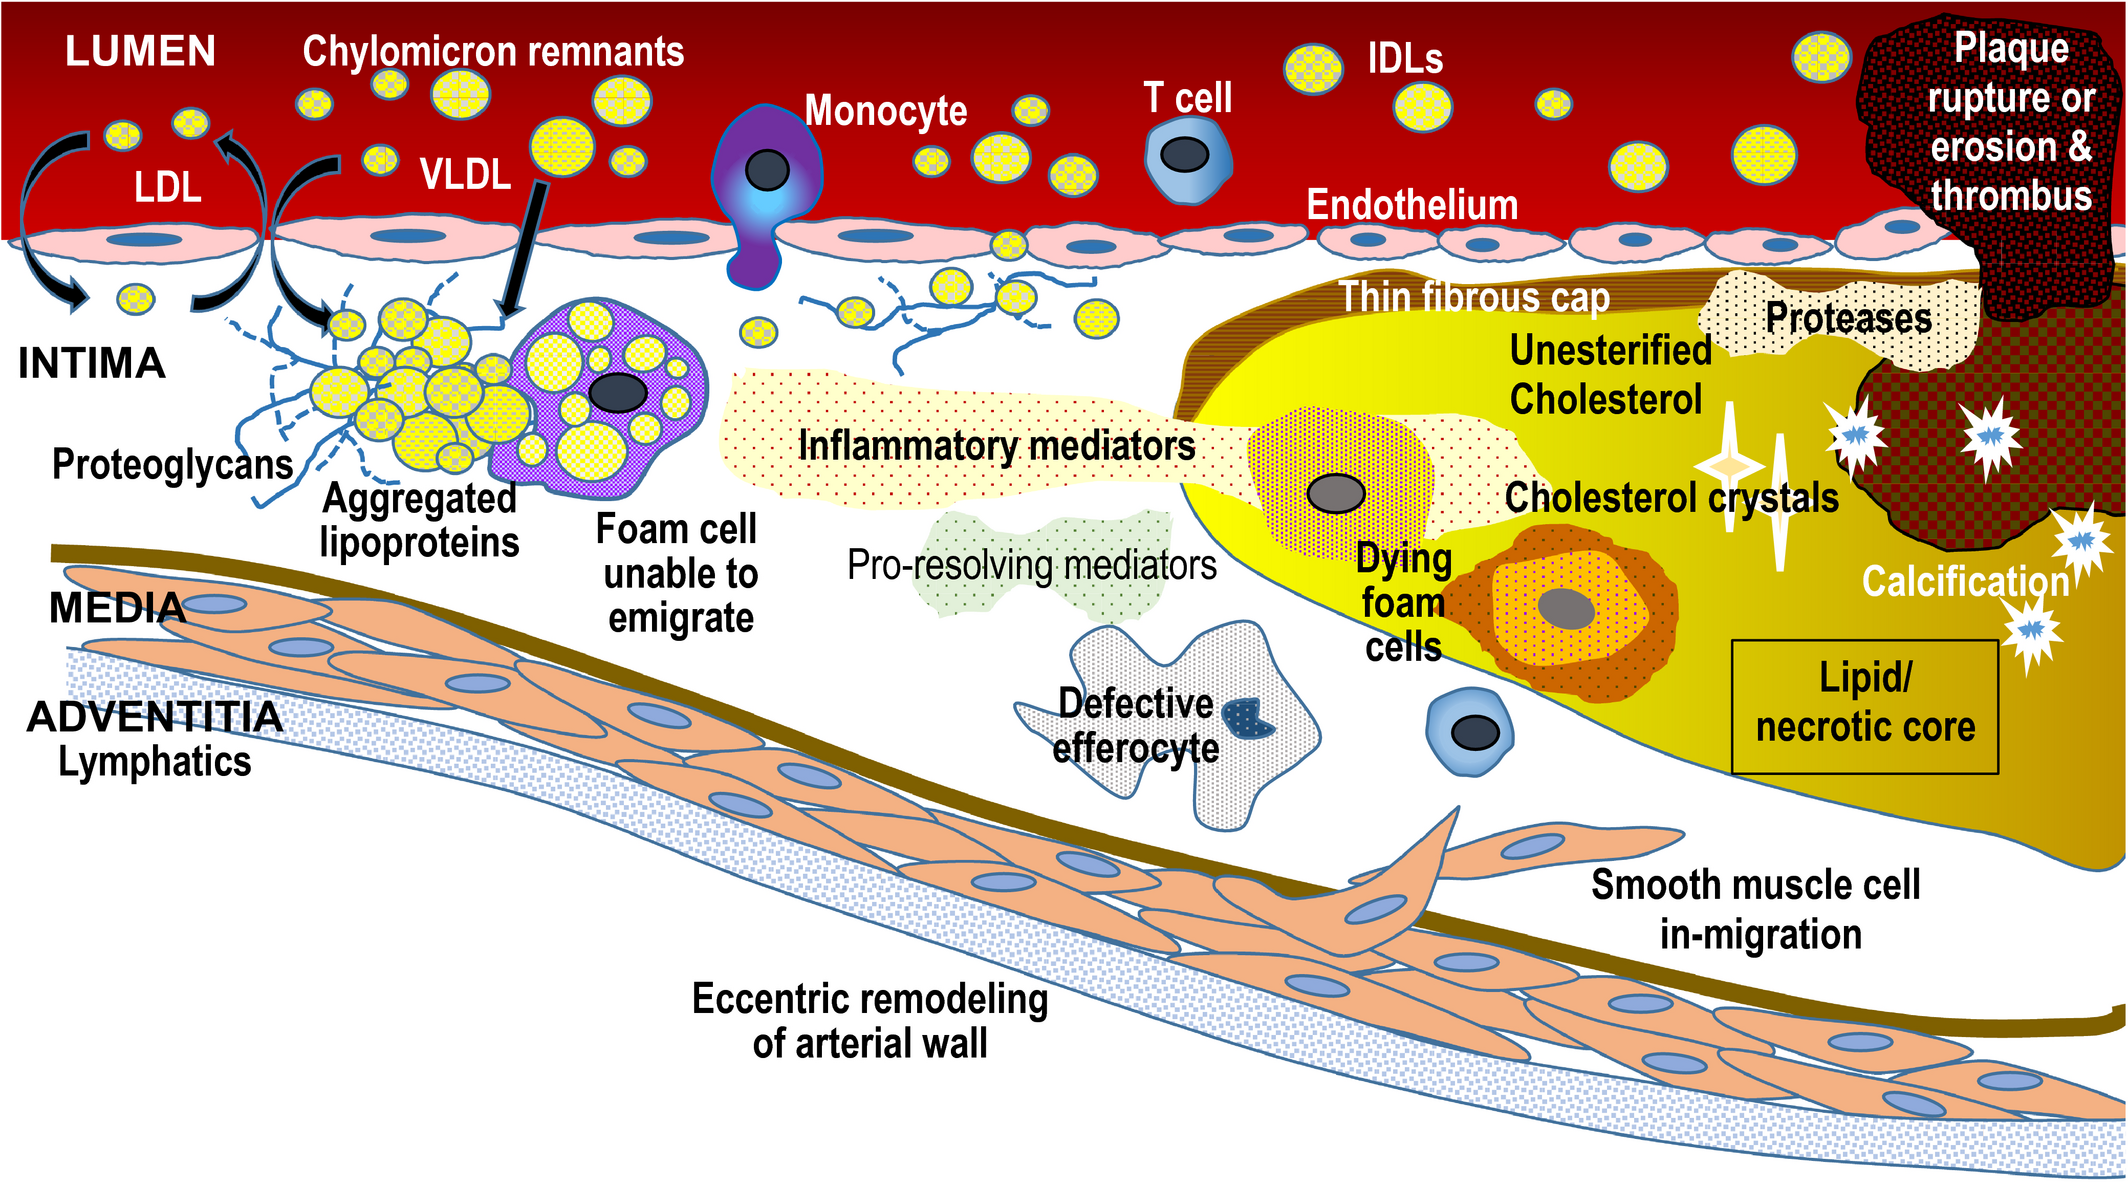 Eradicating the Burden of Atherosclerotic Cardiovascular Disease by